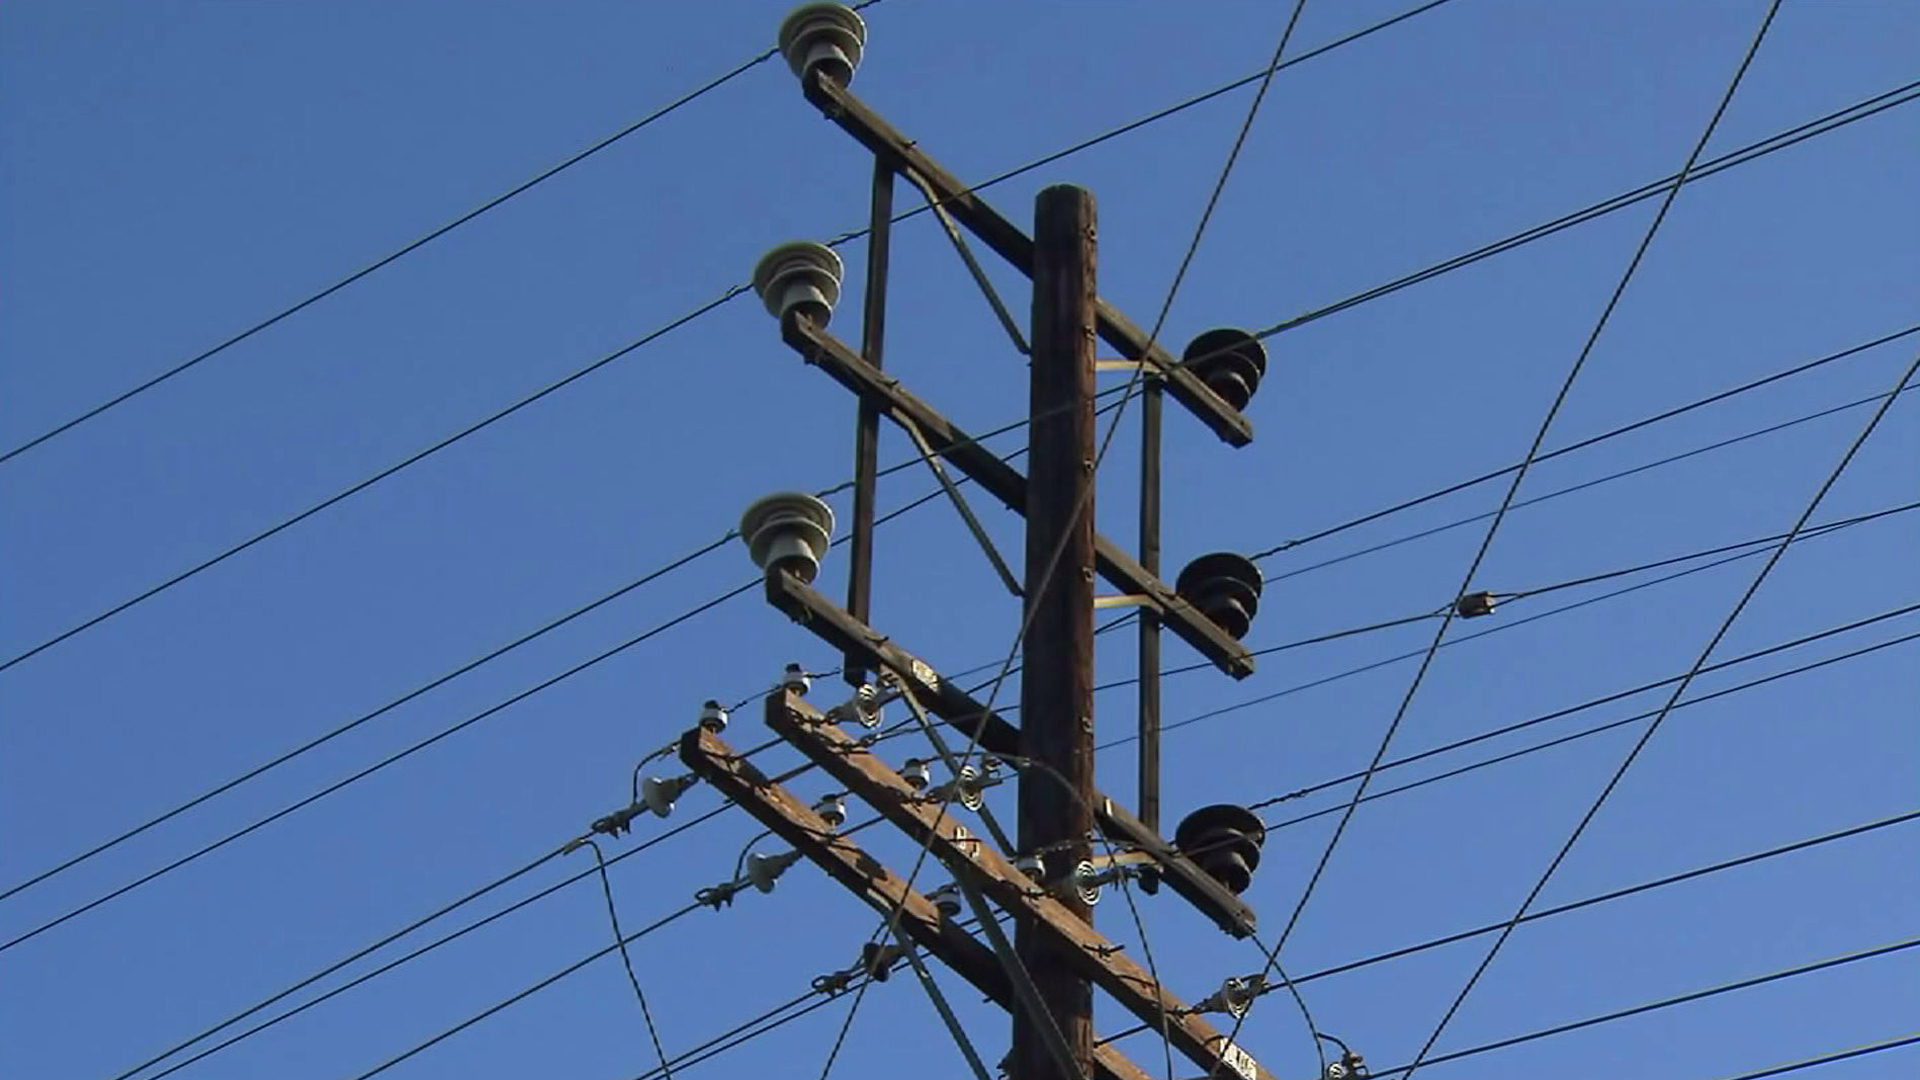 A power pole is seen in a file photo. (Credit: KTLA)